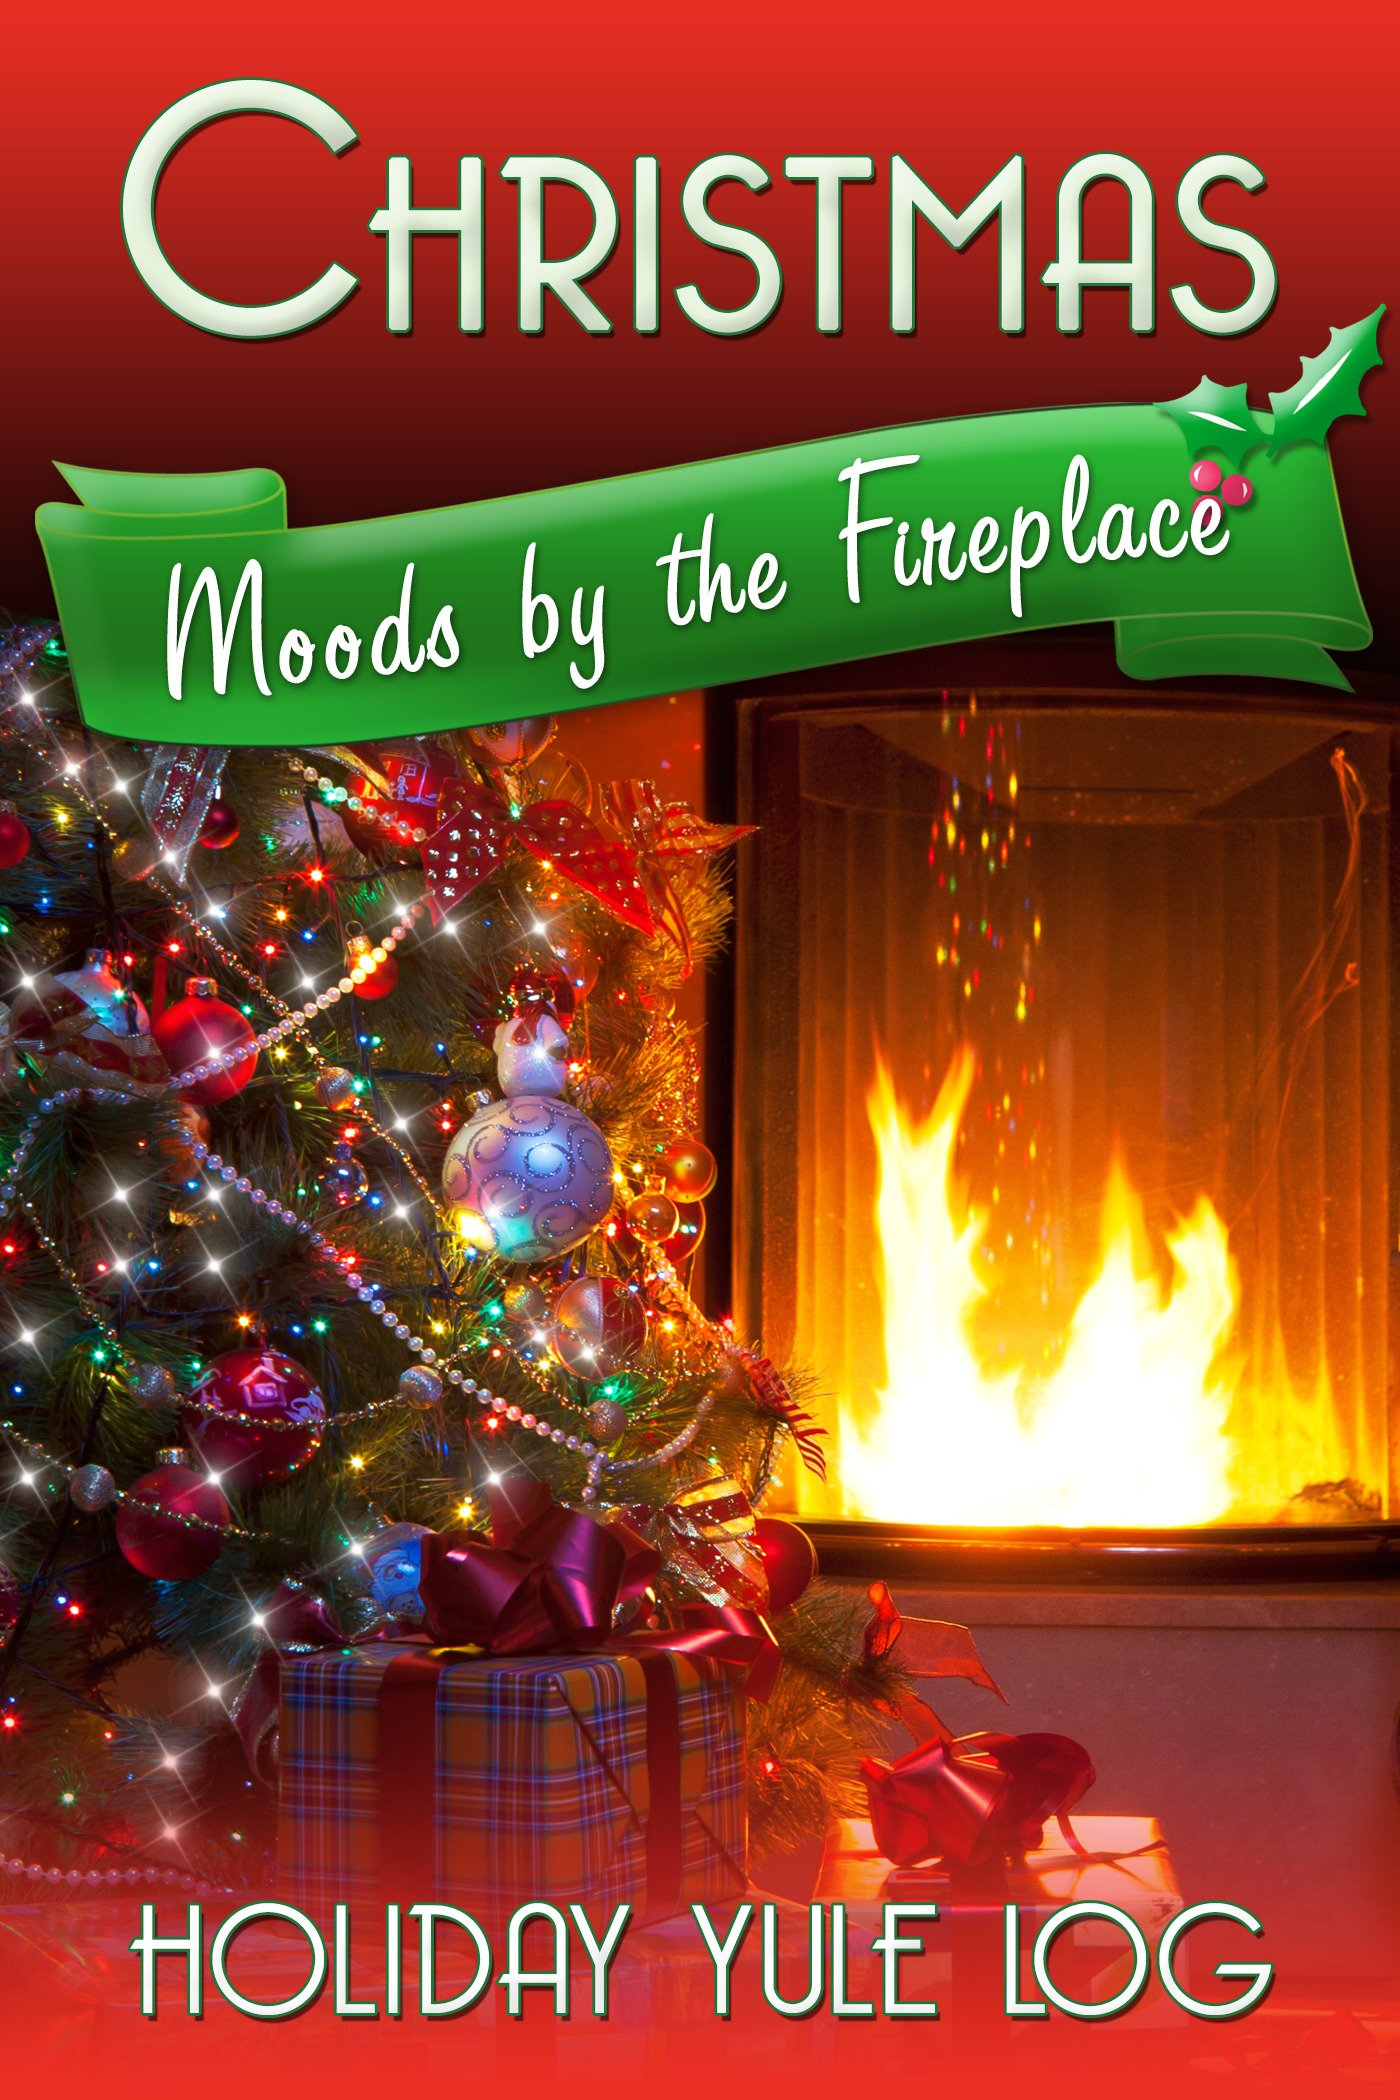 Amazon.com: Christmas Moods by the Fireplace: Holiday Yule Log: Liam ...